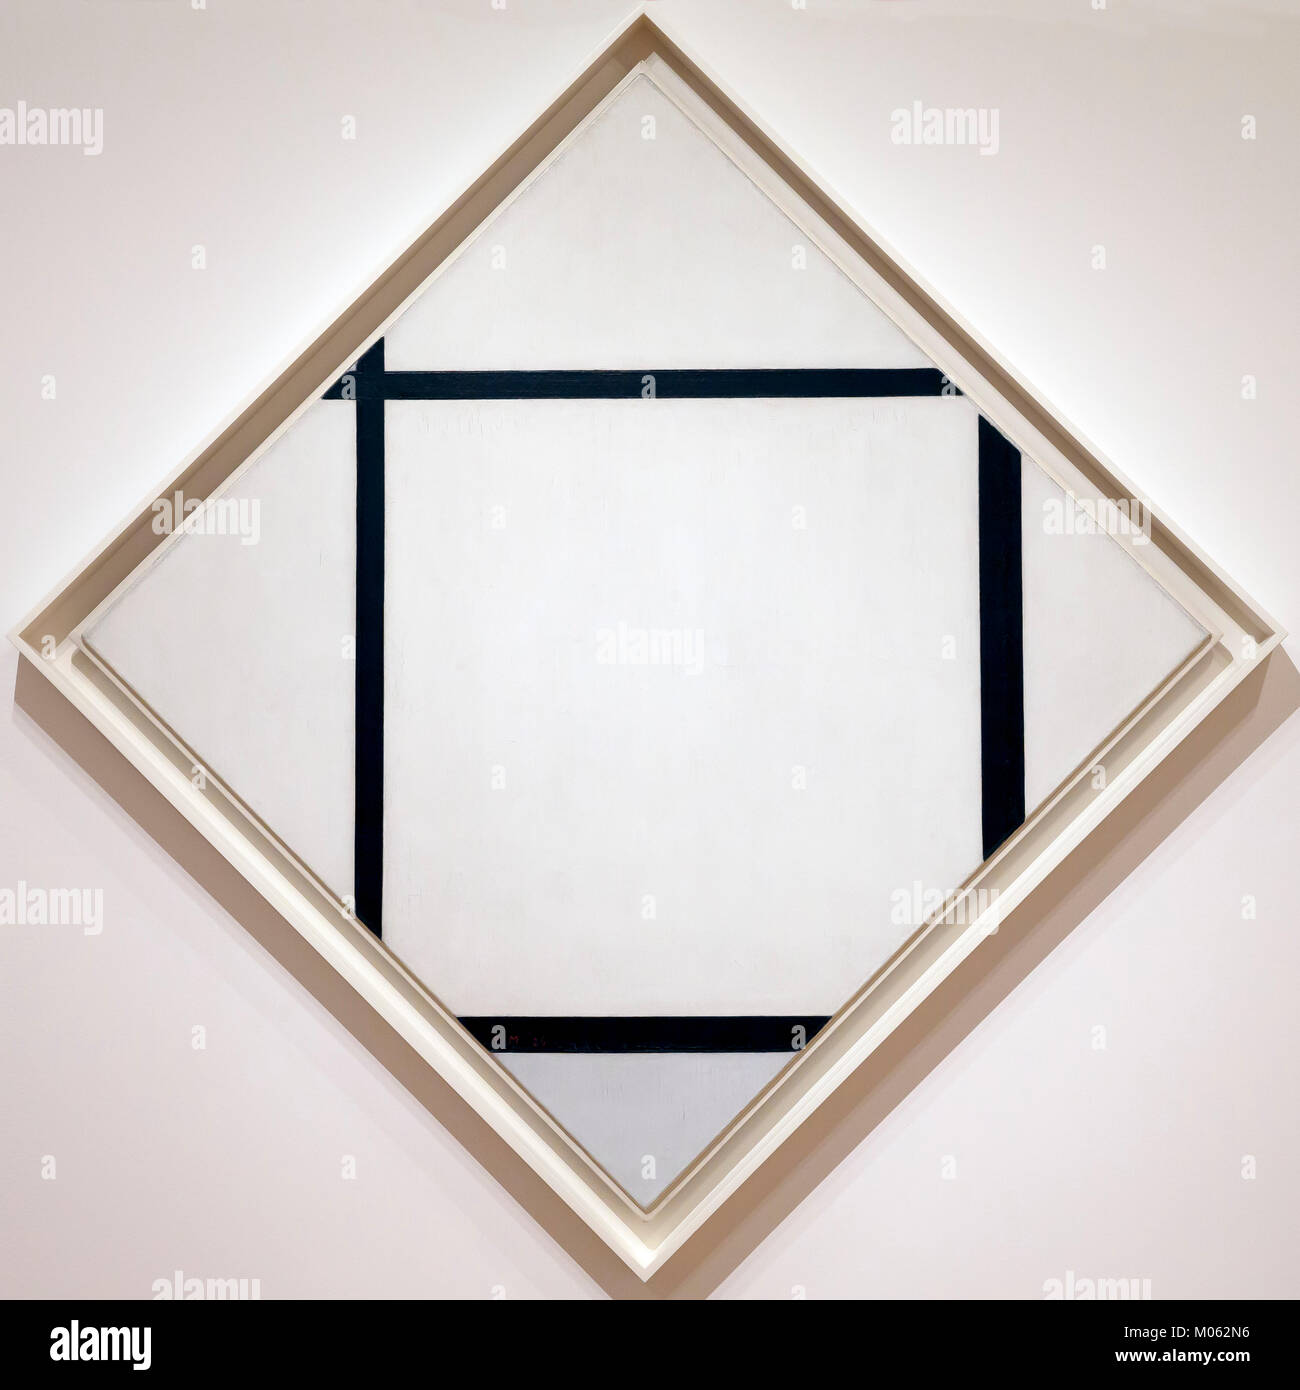 Tableau 1, Lozenge with Four Lines and Gray, Piet Mondrian, 1926, - Stock Image